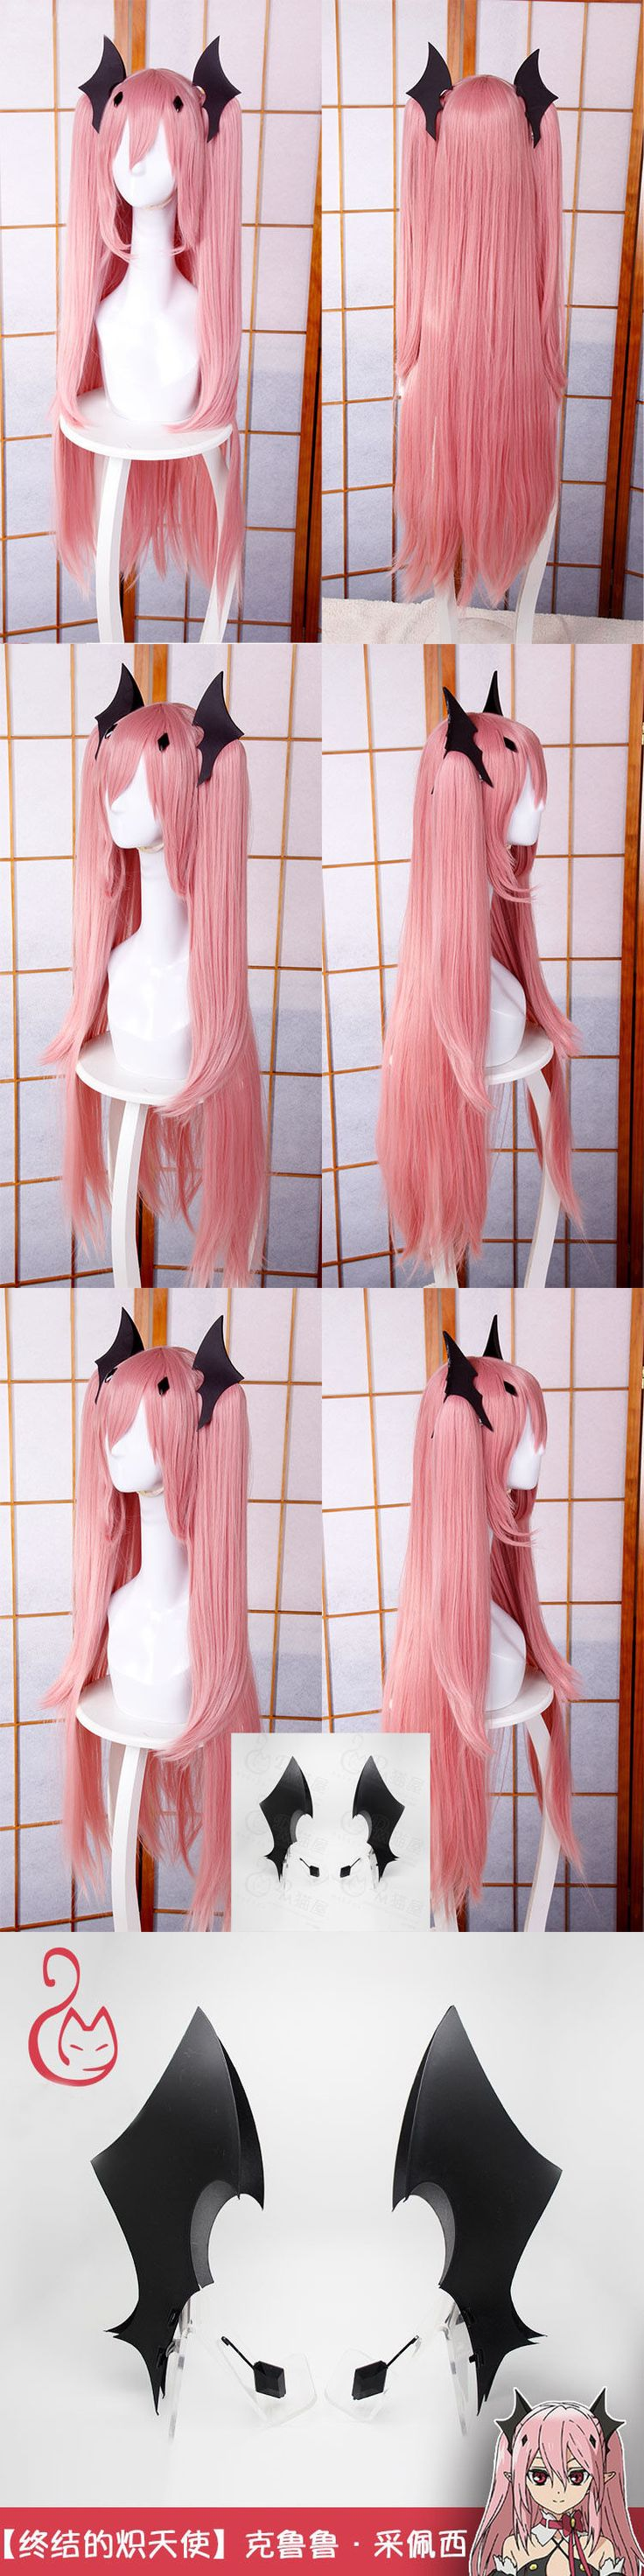 Wigs and Facial Hair 155350: 100Cm Long Straight Krul Tepes Wig Owari No Seraph Of The End Ponytails Wig E067 -> BUY IT NOW ONLY: $35.99 on eBay!